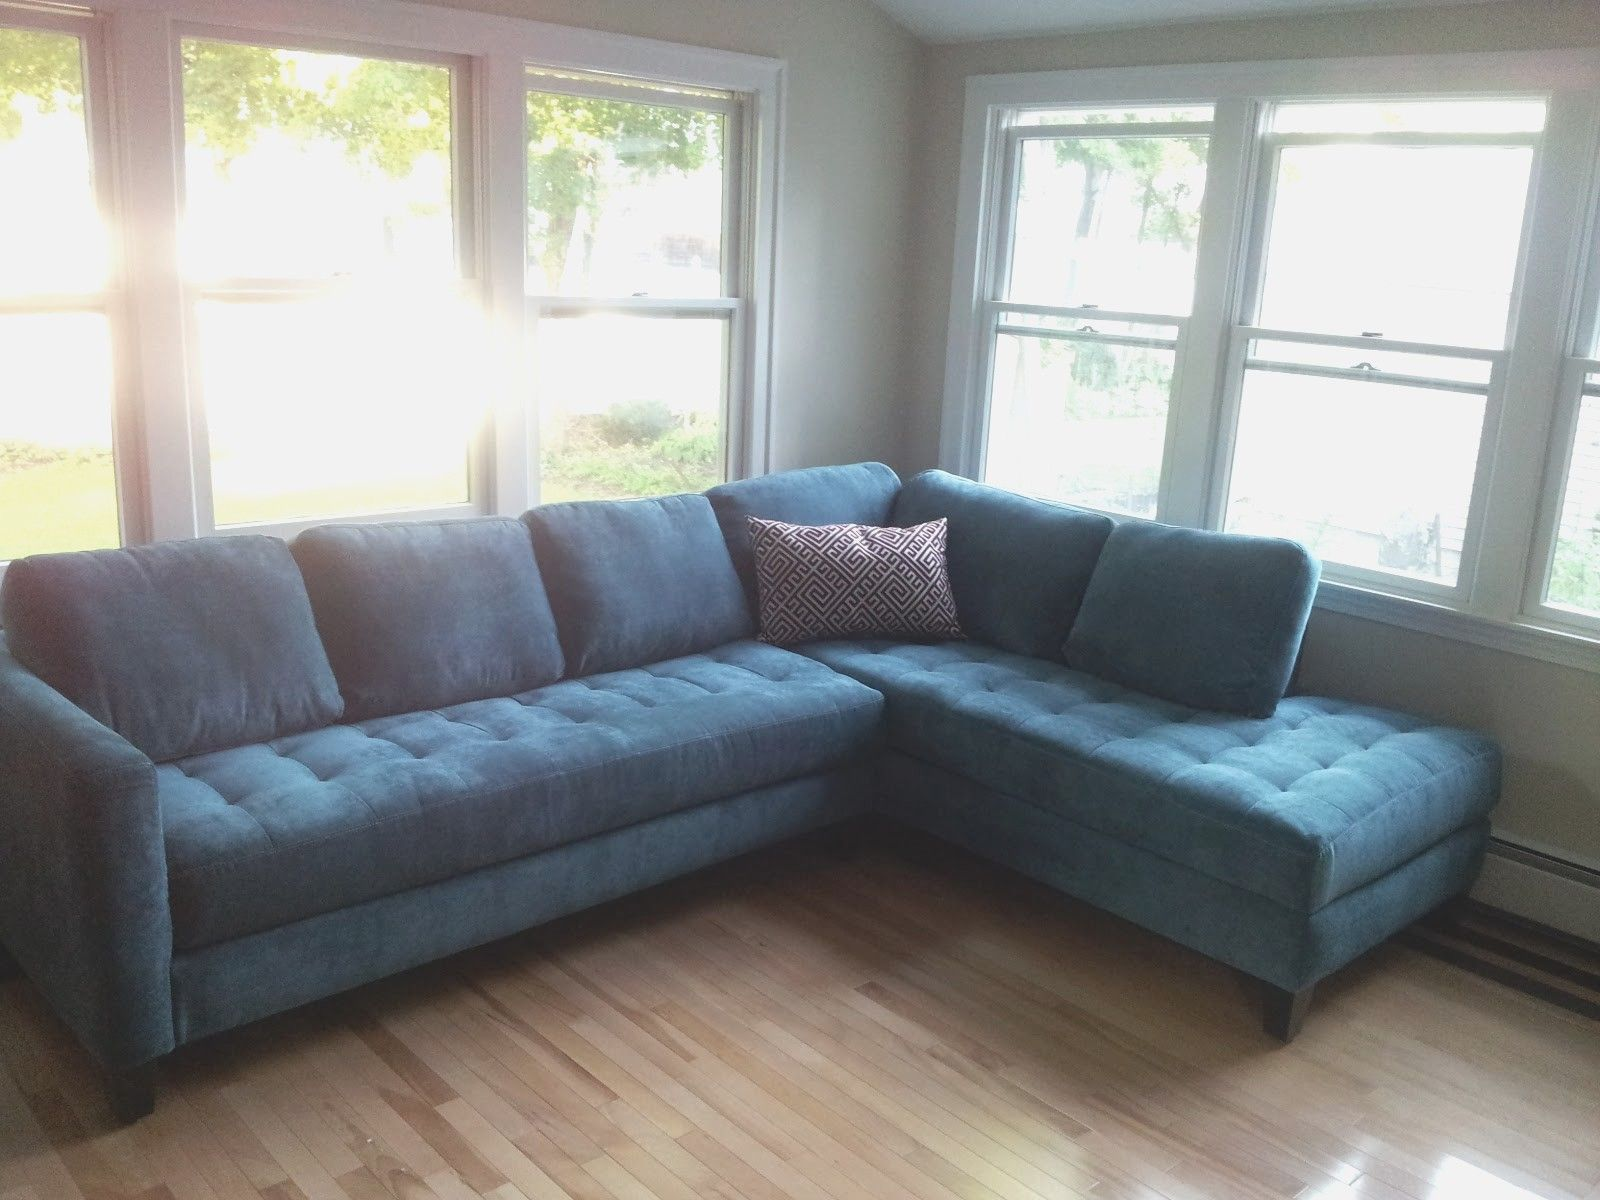 Sectional sofas for Small Living Rooms - arrange sectional ...